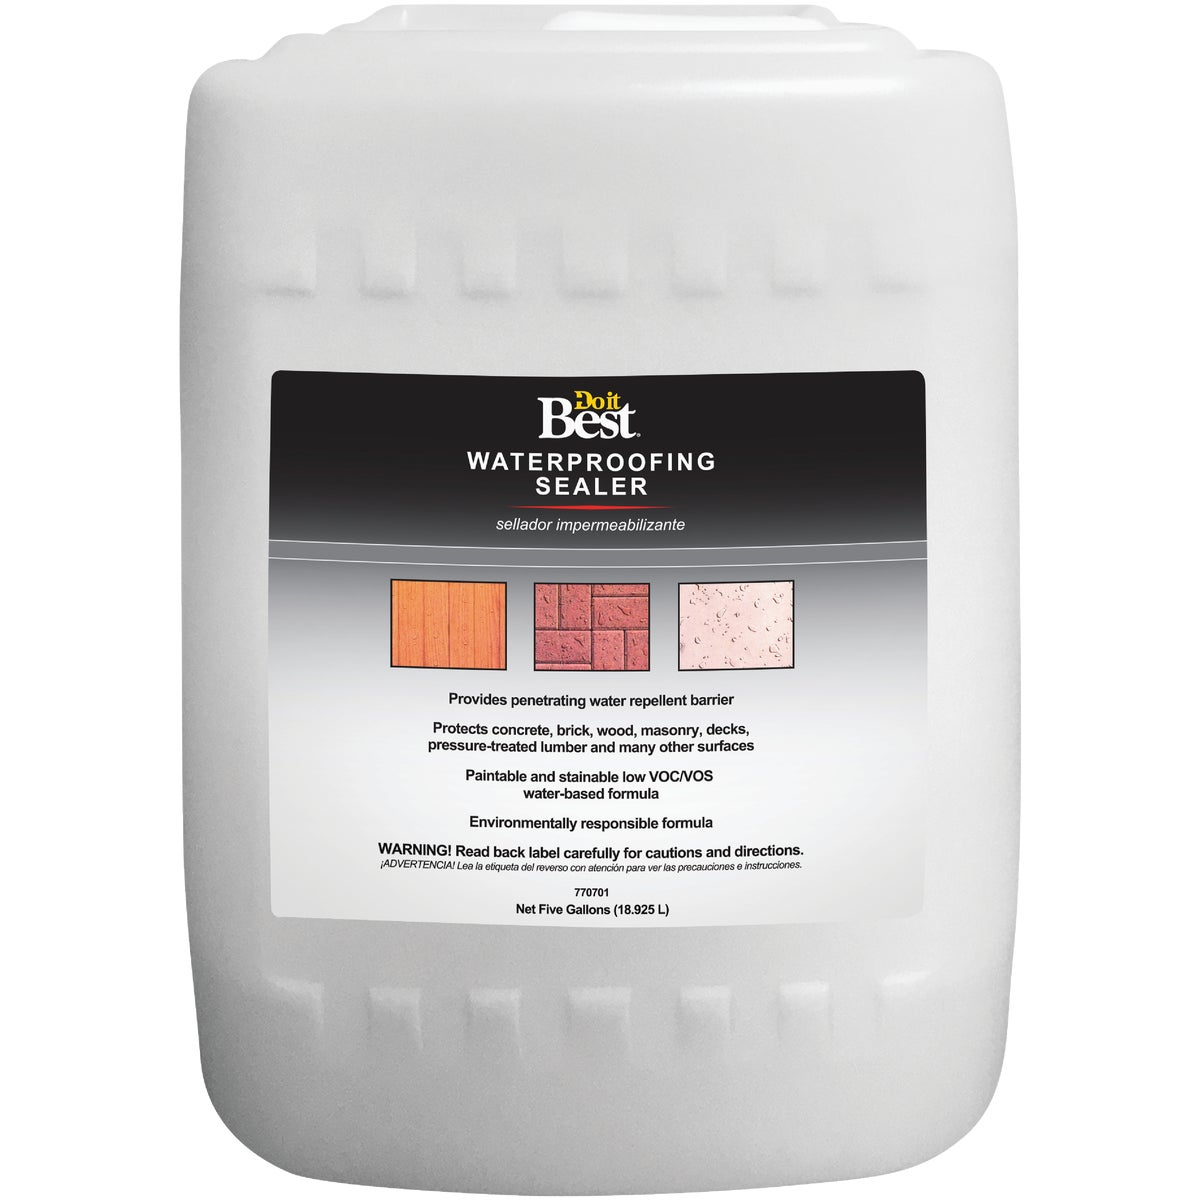 CLR WATERPROOFING SEALER - 726G5H by Sunnyside Corp